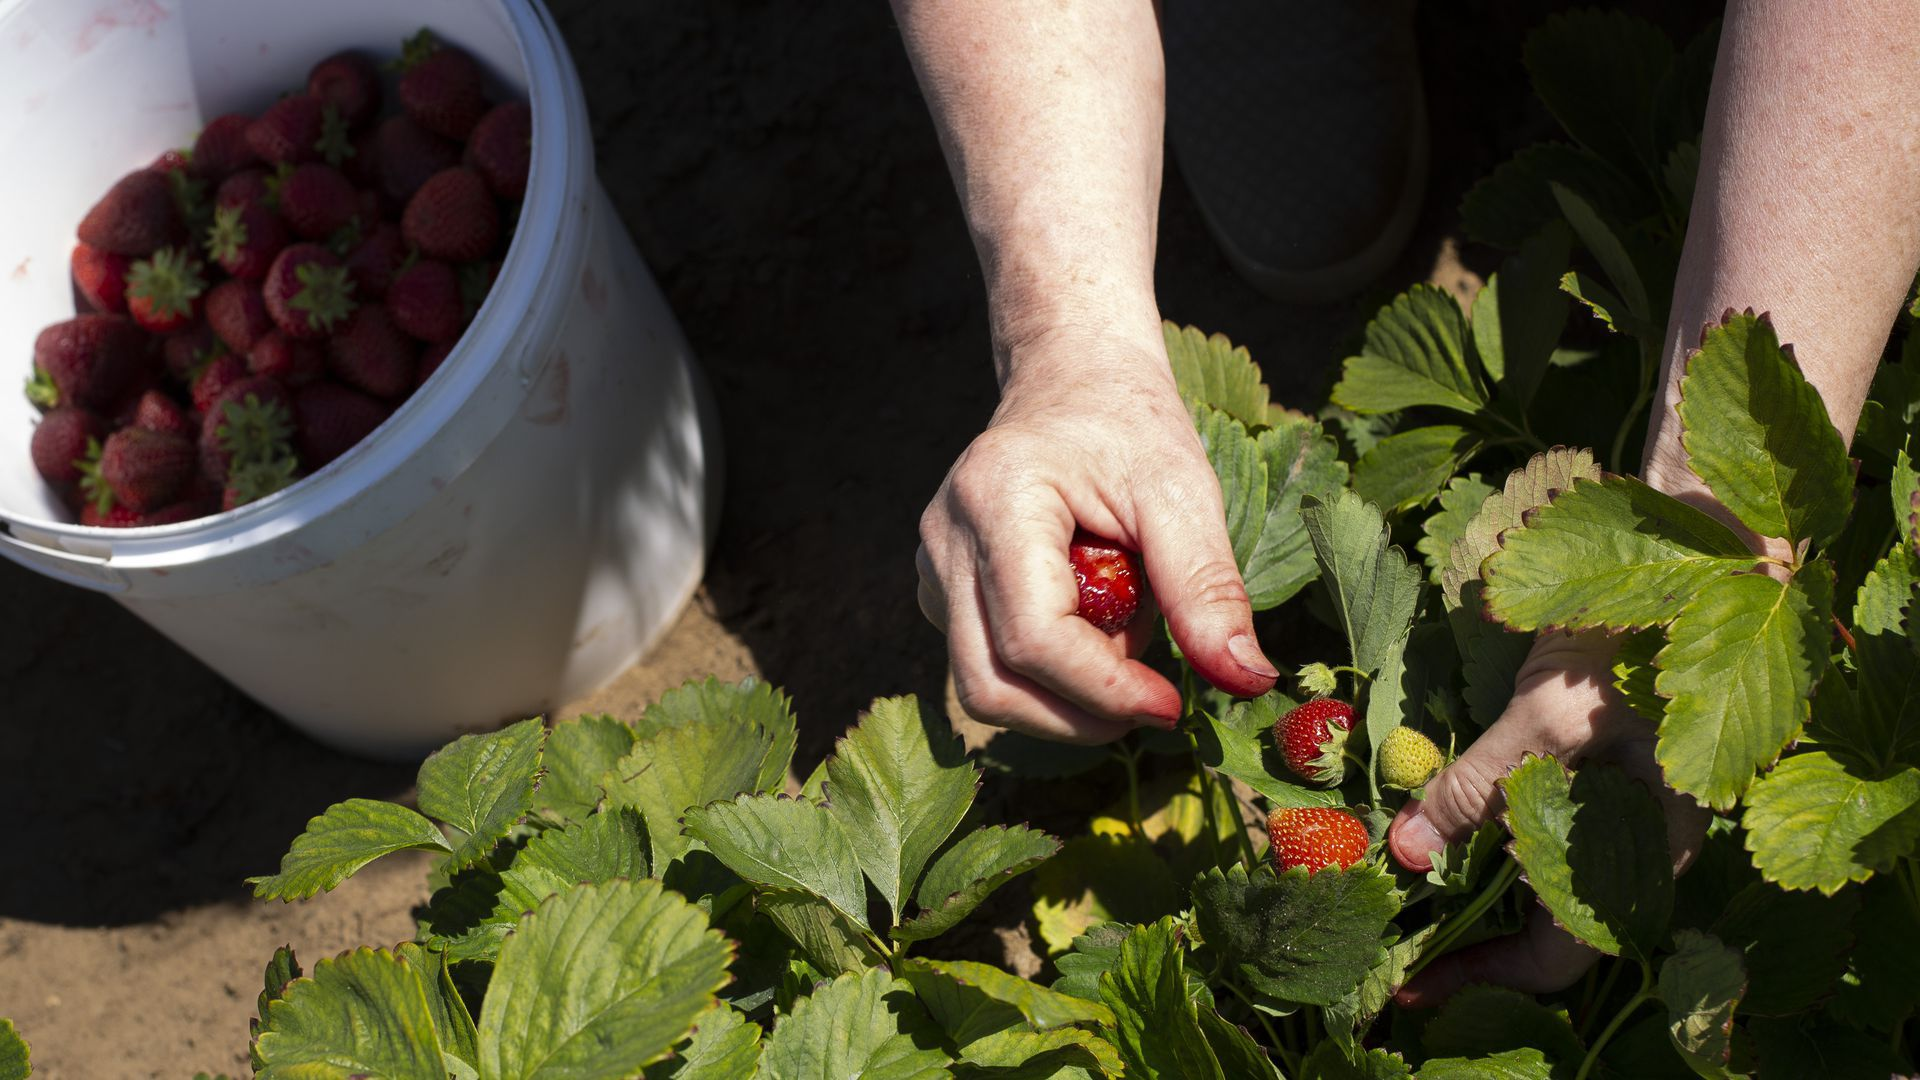 A person's hands picking strawberries.